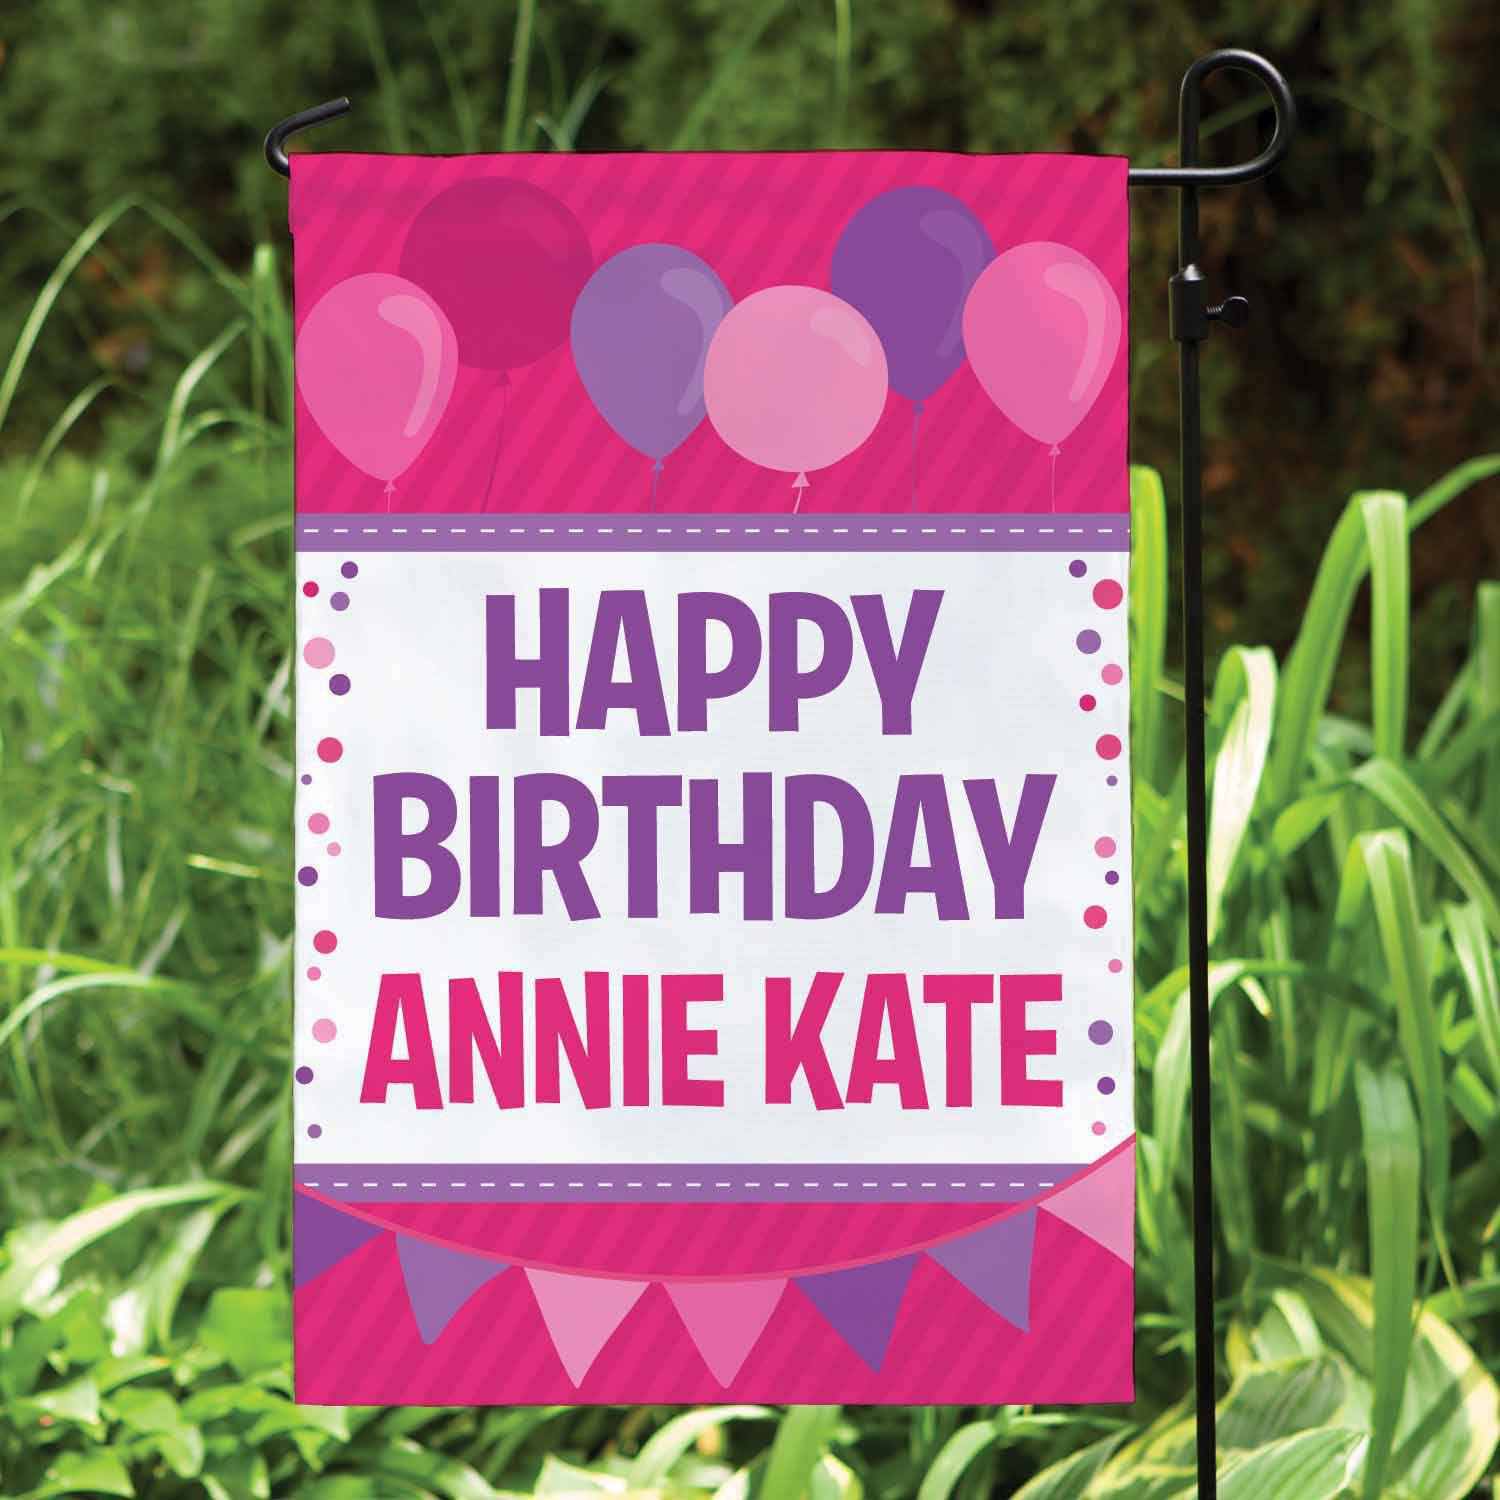 Personalized Birthday Garden Flag, Pink and Purple